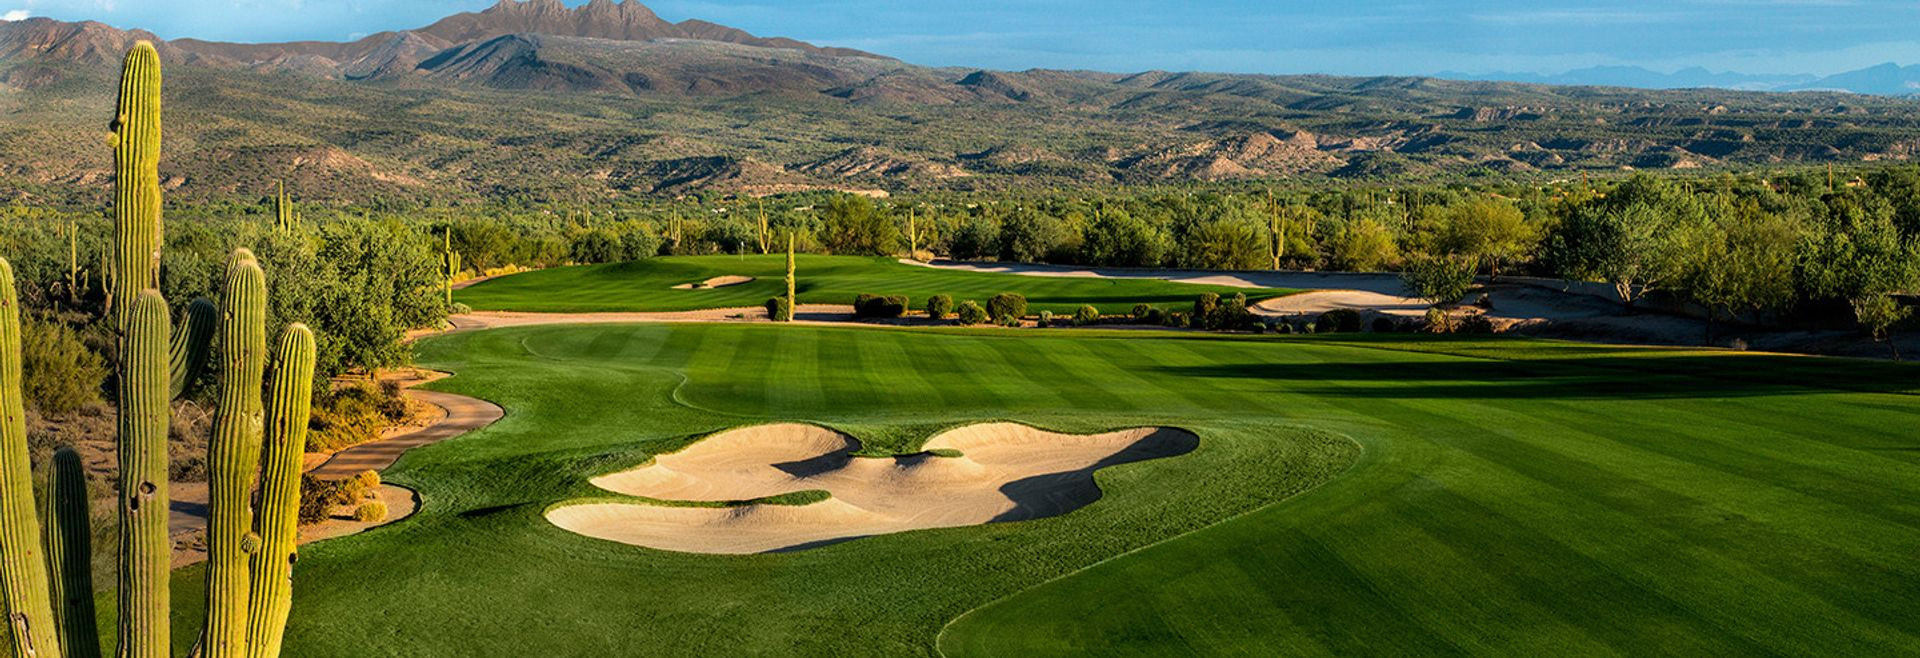 Golf Course at 55+ community Trilogy Verde River